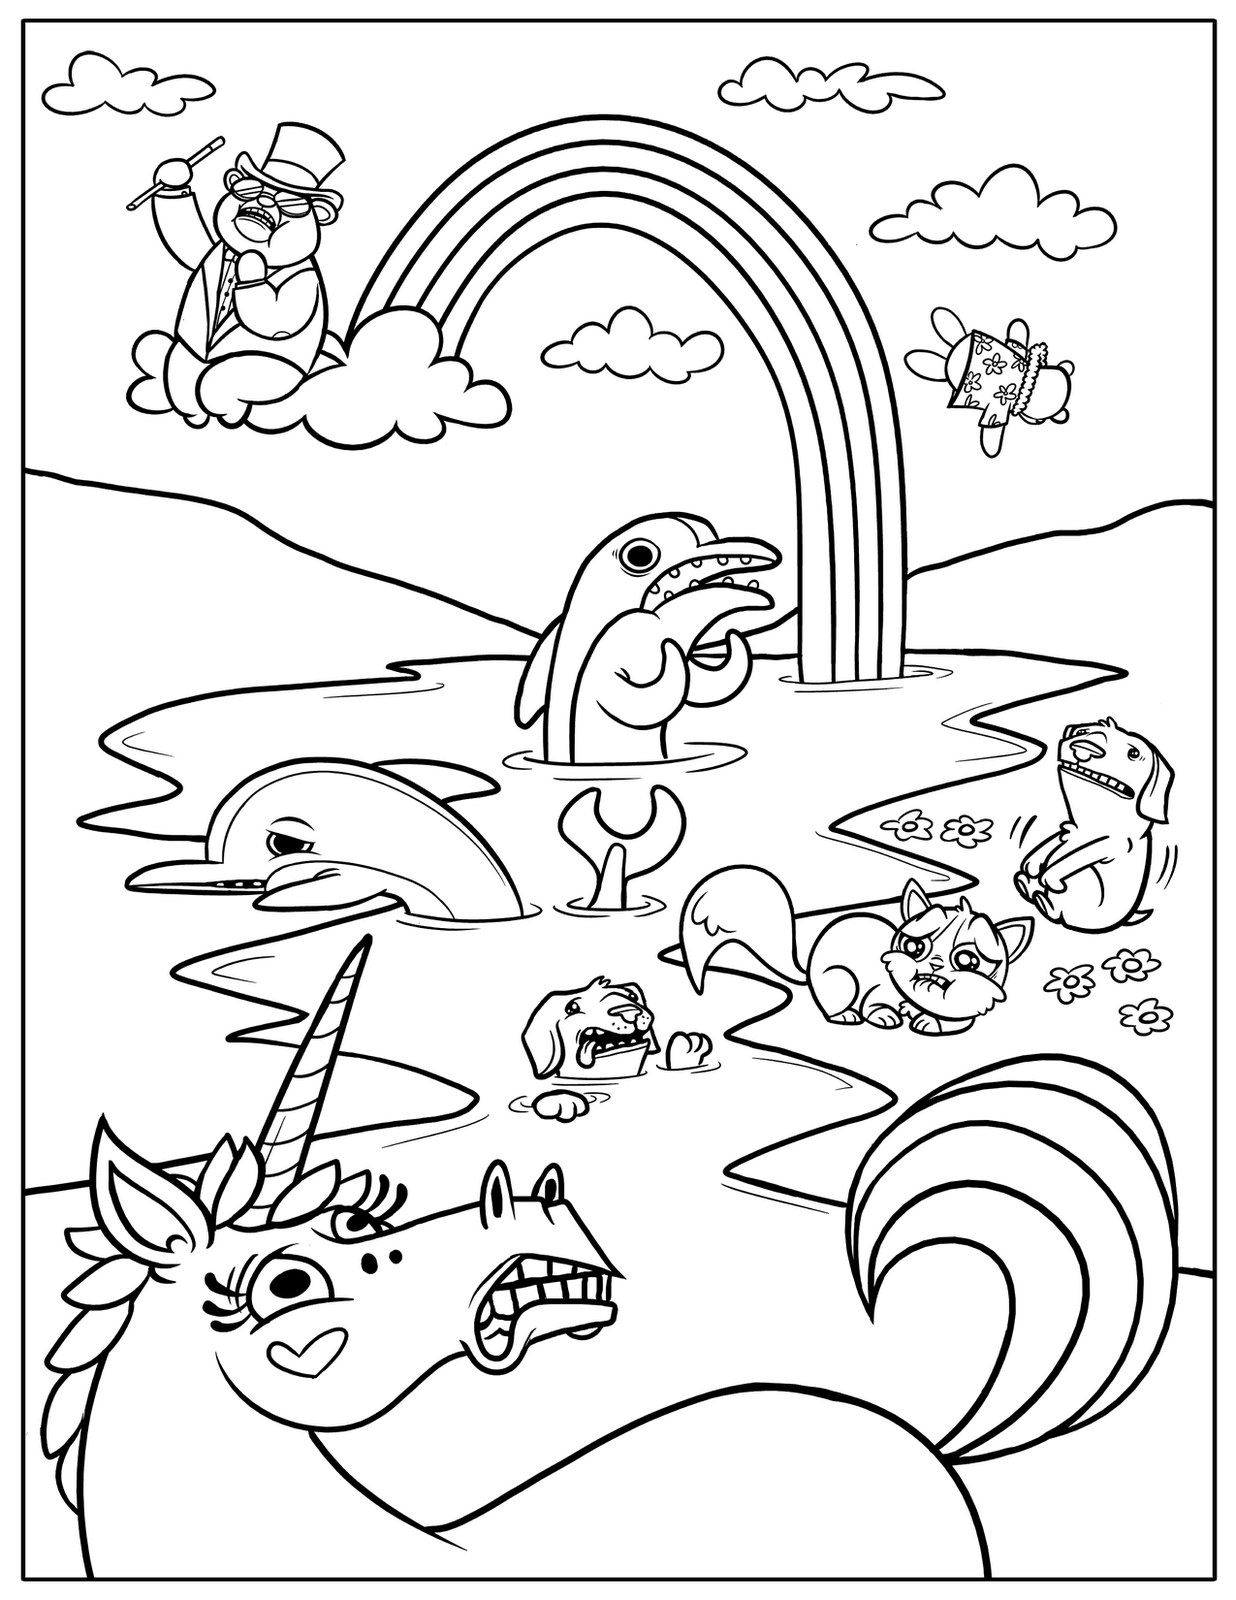 coloring pictures for kids anime coloring pages best coloring pages for kids pictures kids for coloring